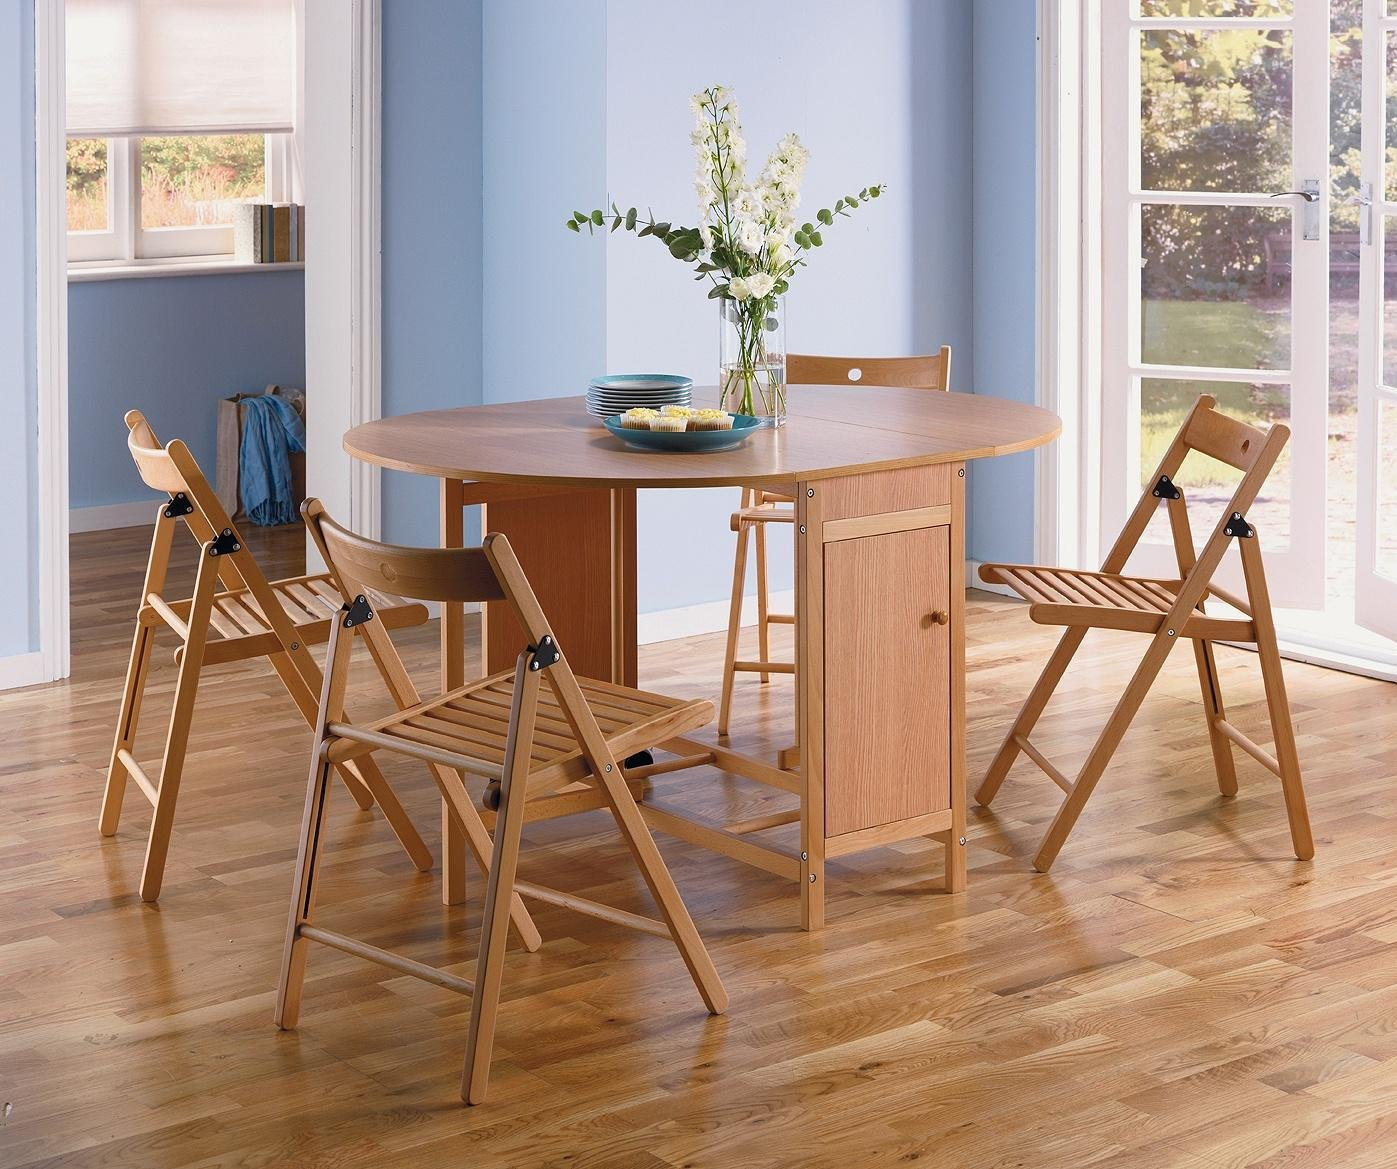 Buy HOME Butterfly Ext Oval Wood Effect Table   Chairs - Oak at